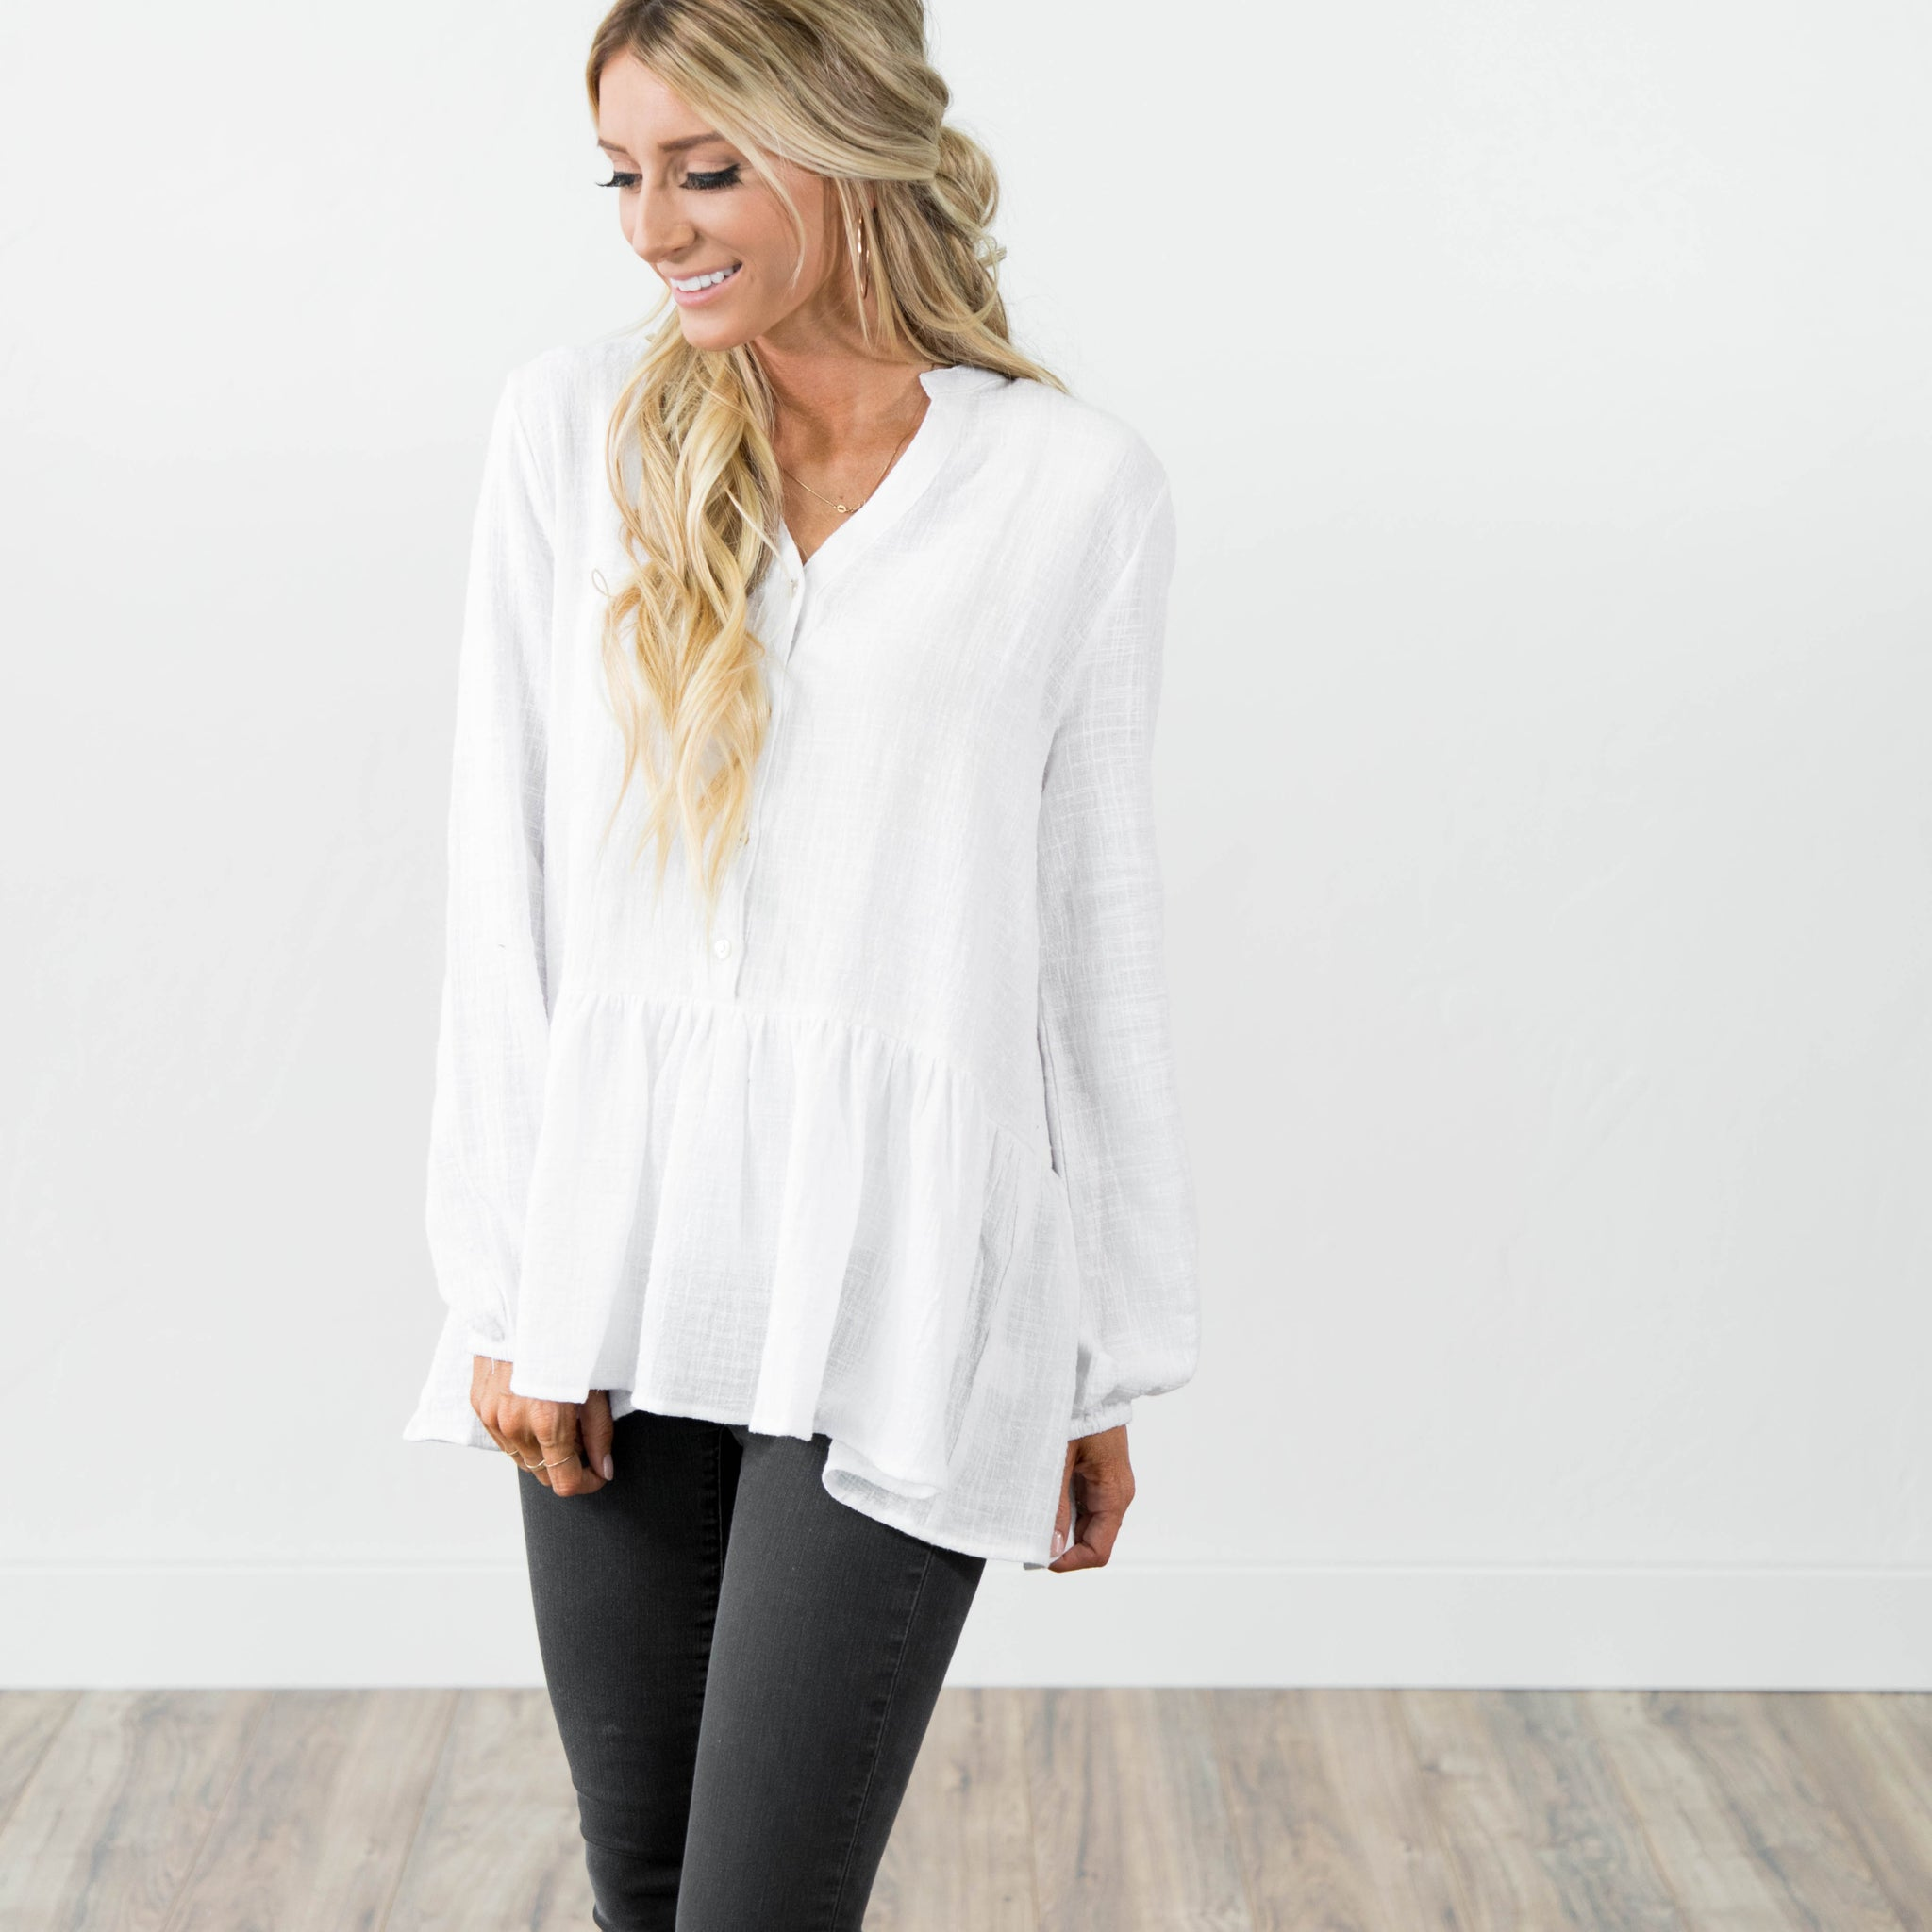 Rowan Peplum Button Up in Ivory